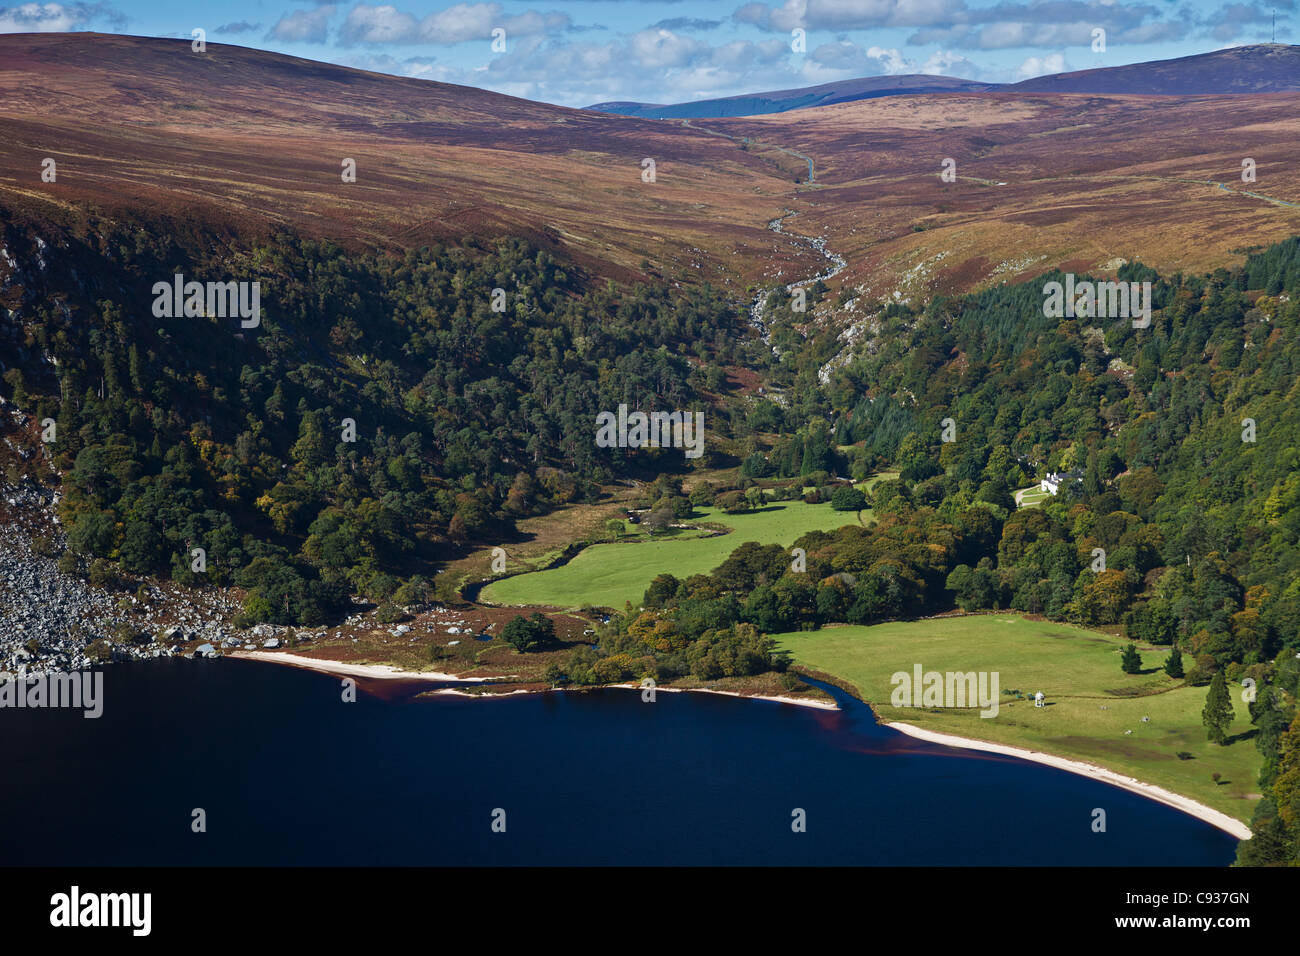 Ireland, Co. Wicklow, Luggala, Lough Tay, view looking towards the Luggala Estate and Sally Gap. - Stock Image